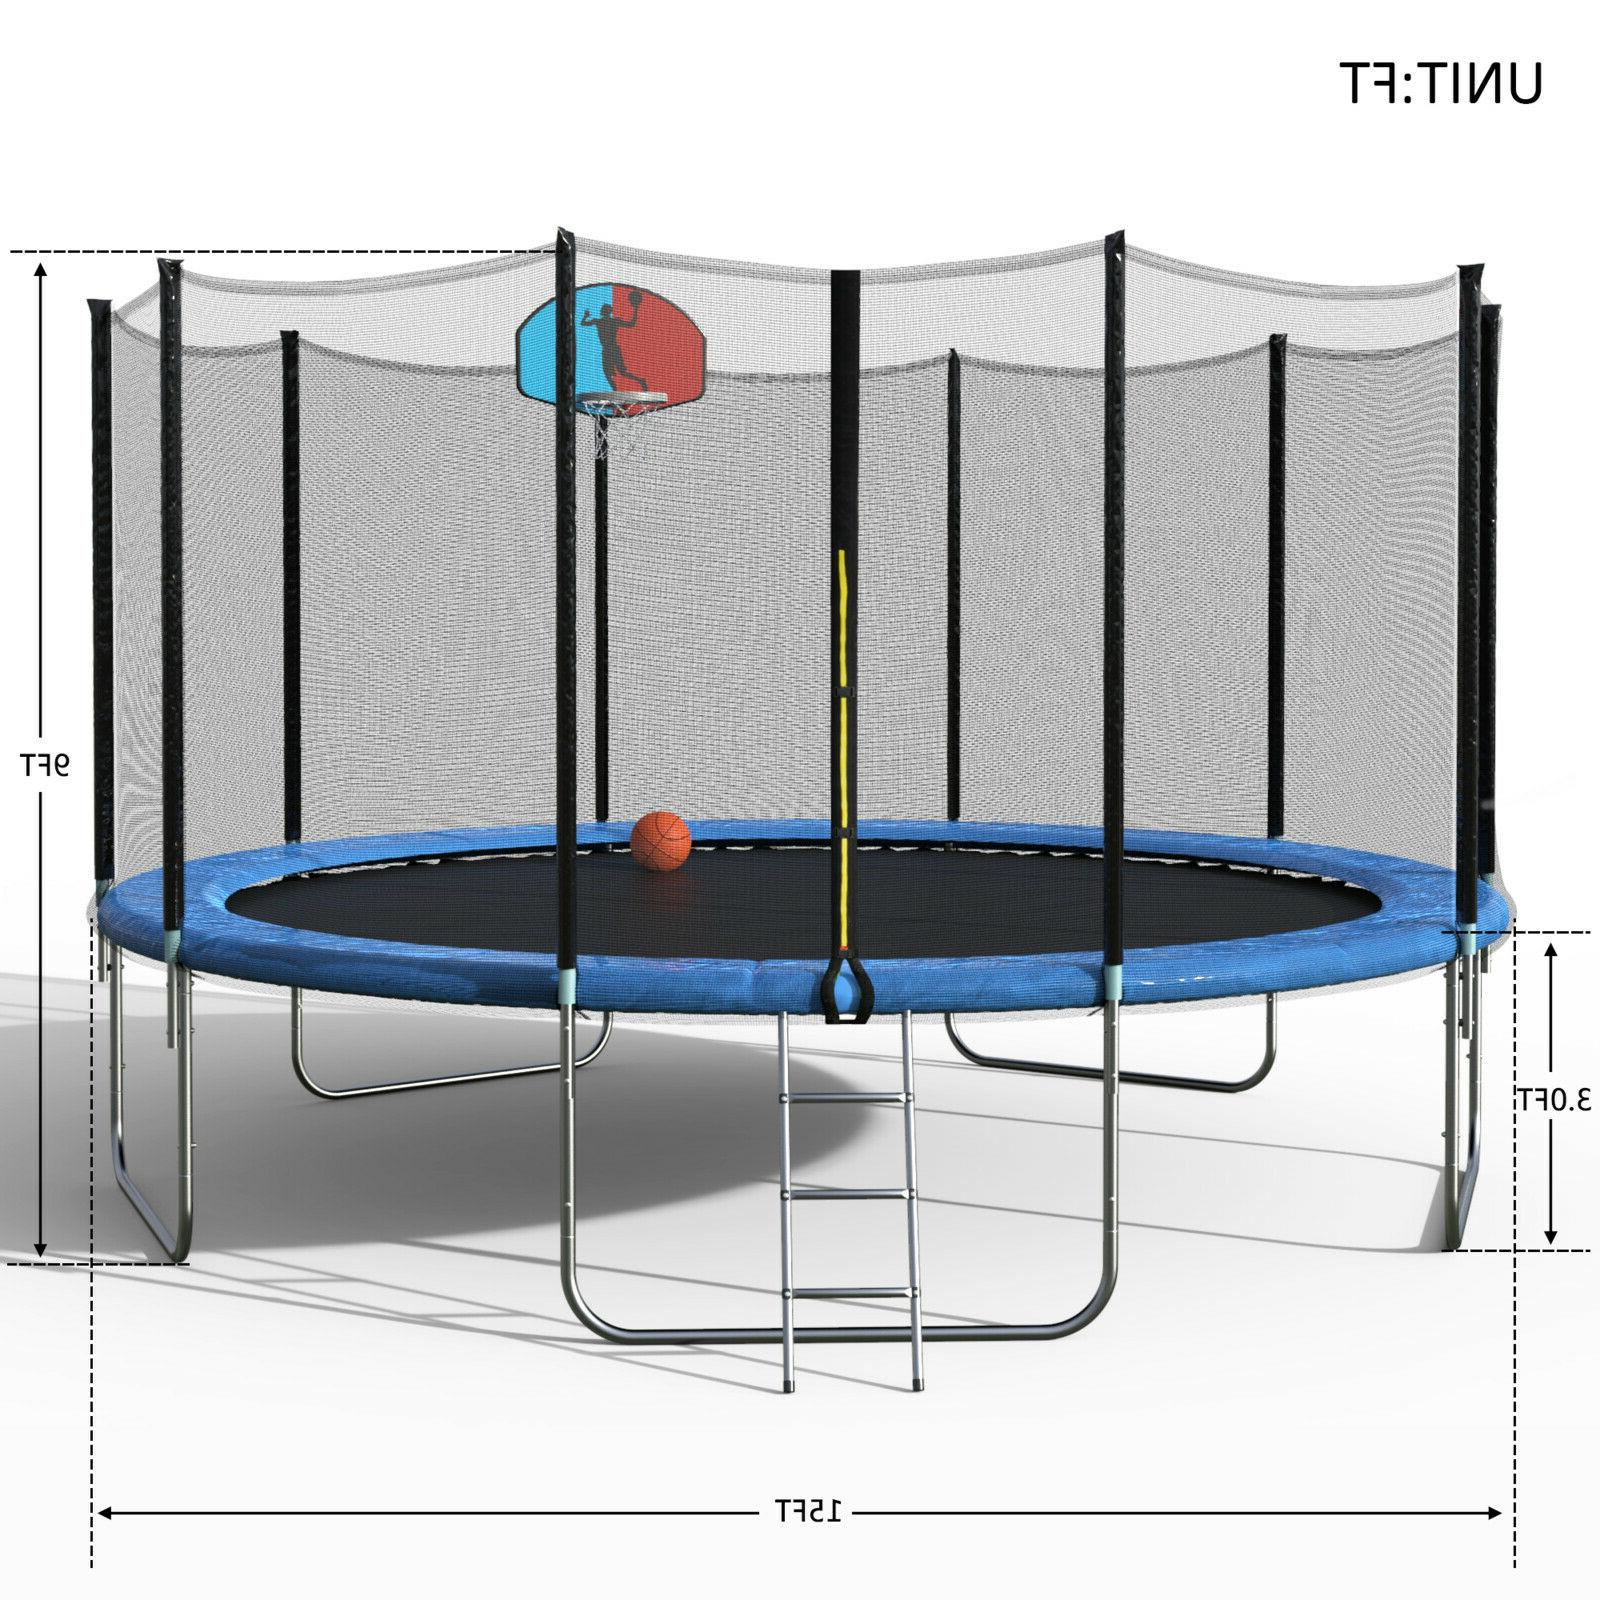 Merax 15 Foot Trampoline with Safety Enclosure, Basketball and Ladder